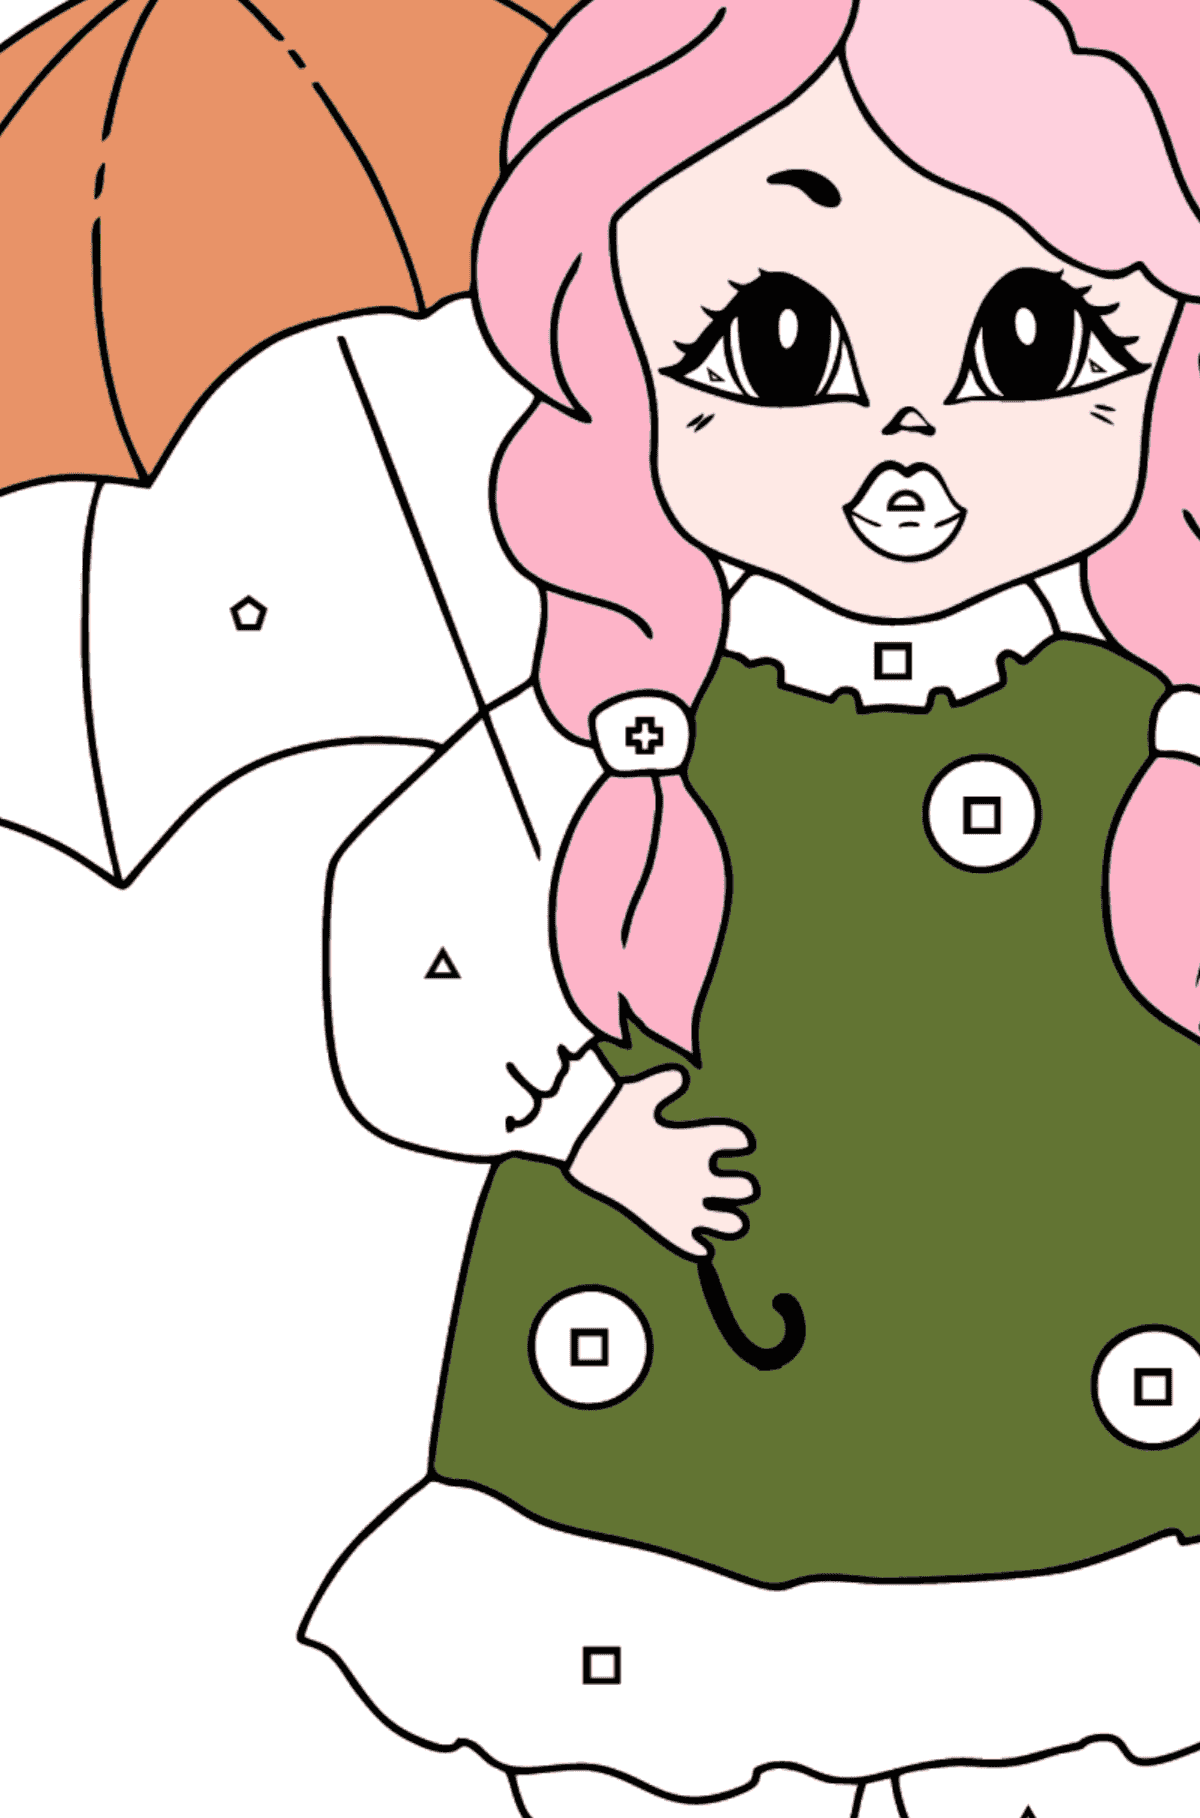 Coloring Page - A Princess with an Umbrella - Coloring by Geometric Shapes for Kids